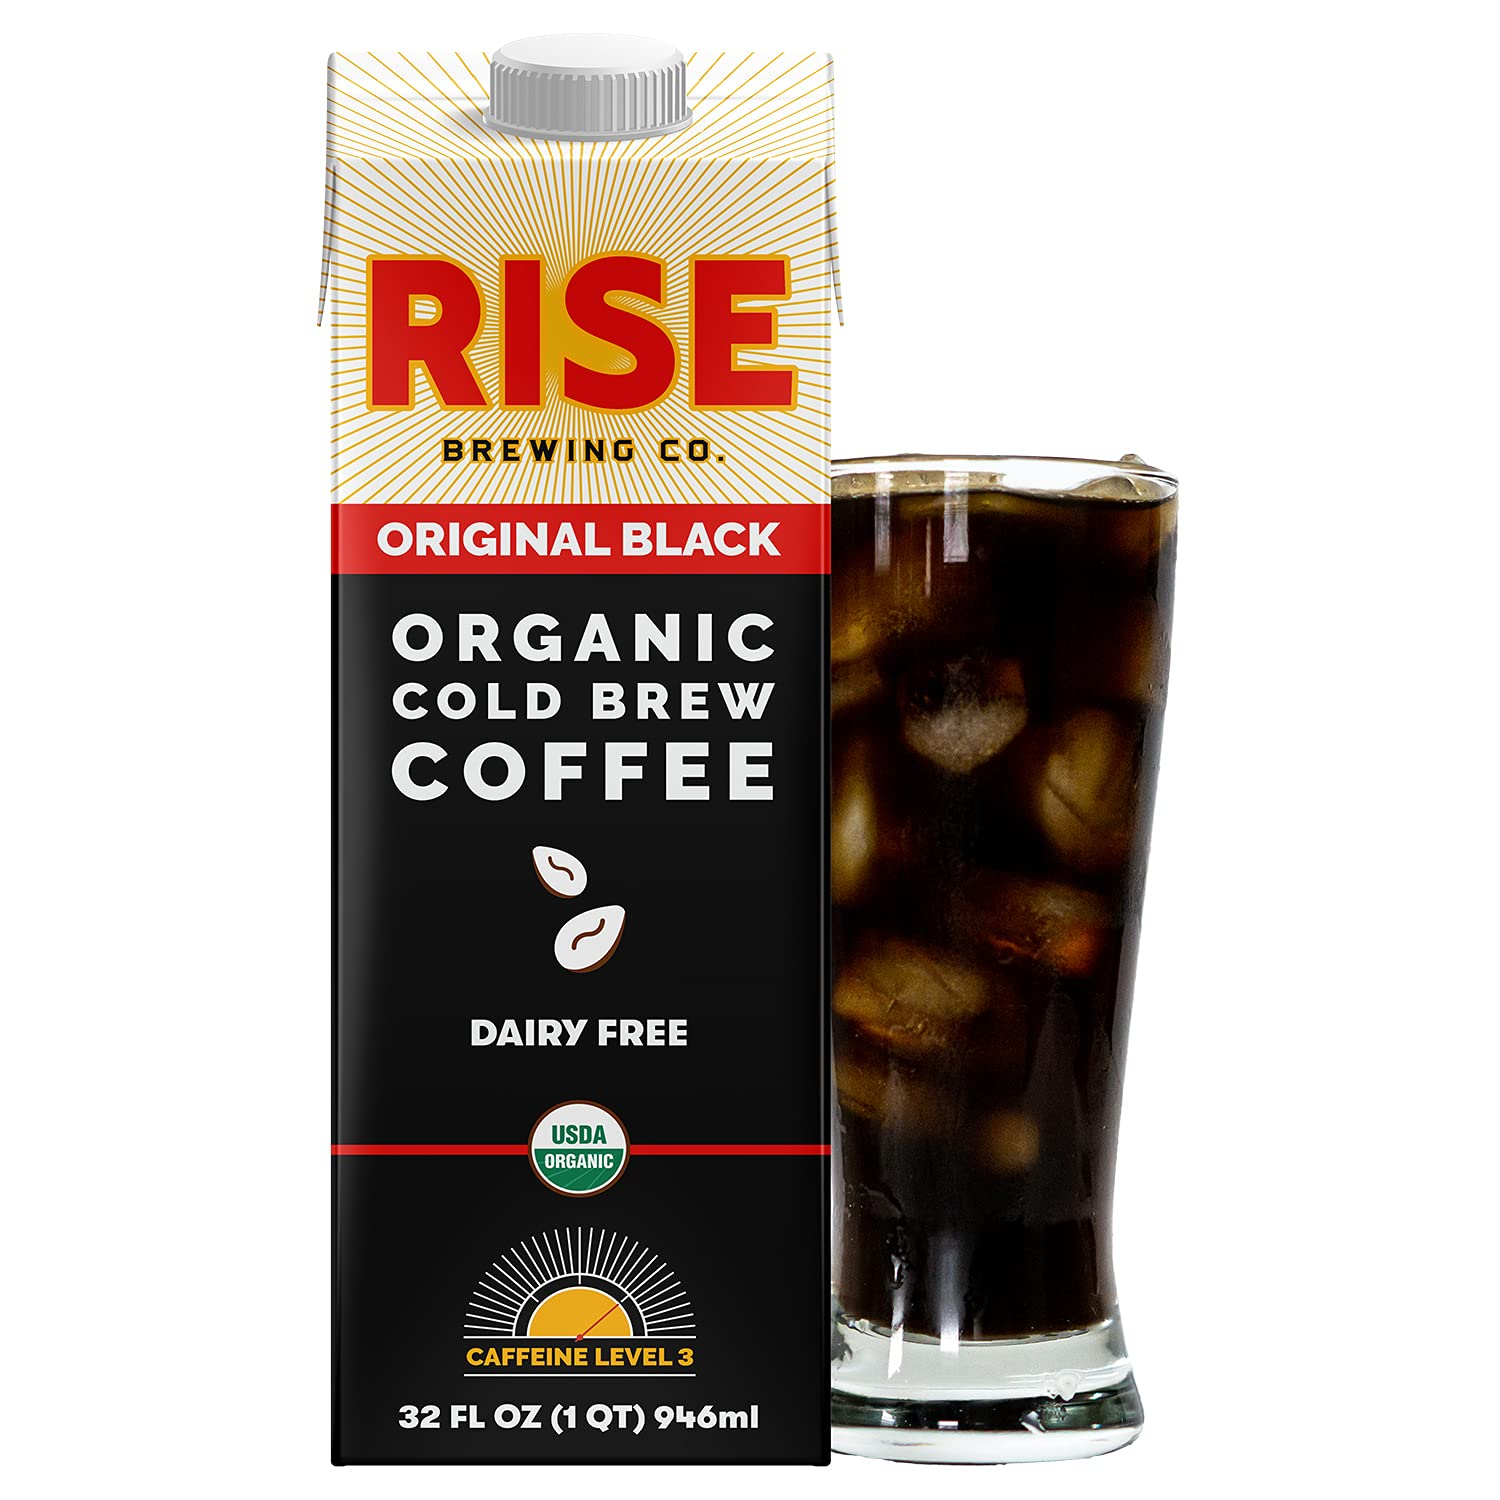 RISE Brewing Co. Original Black Max 51% OFF Non-Dairy Clearance SALE Limited time Cold Vegan Brew